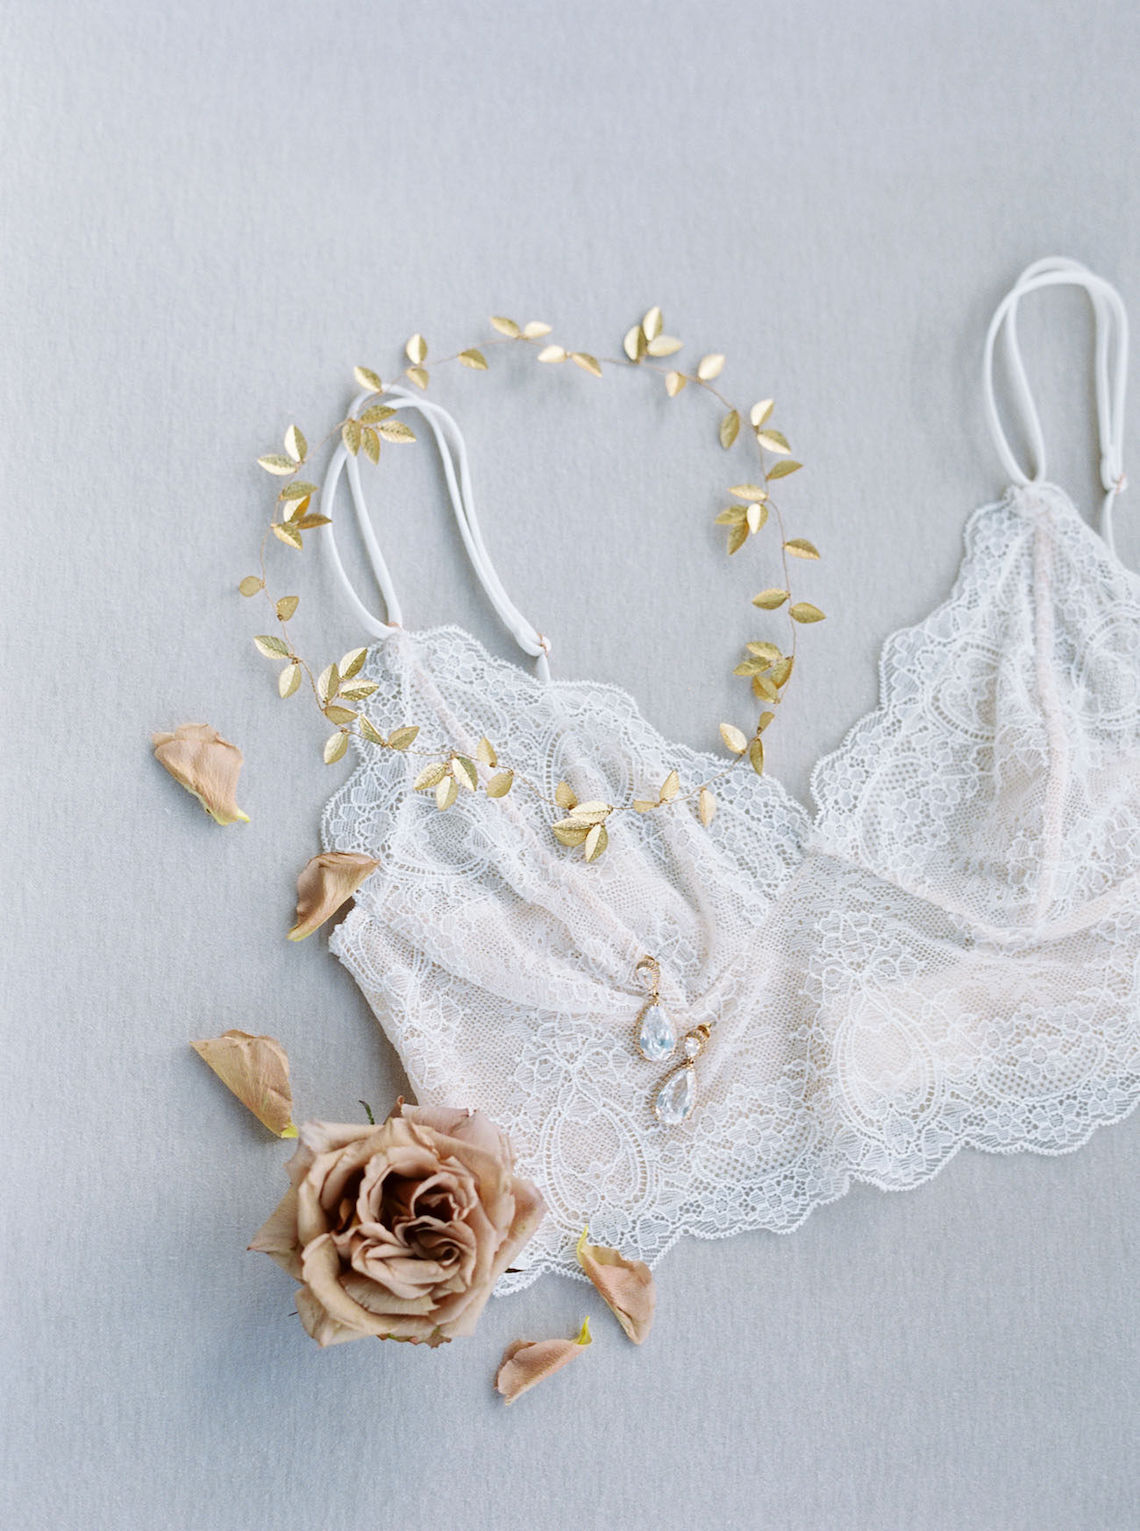 Dreamy and Ethereal Ballerina Bridal Boudoir Inspiration – Samin Abarqoi 27